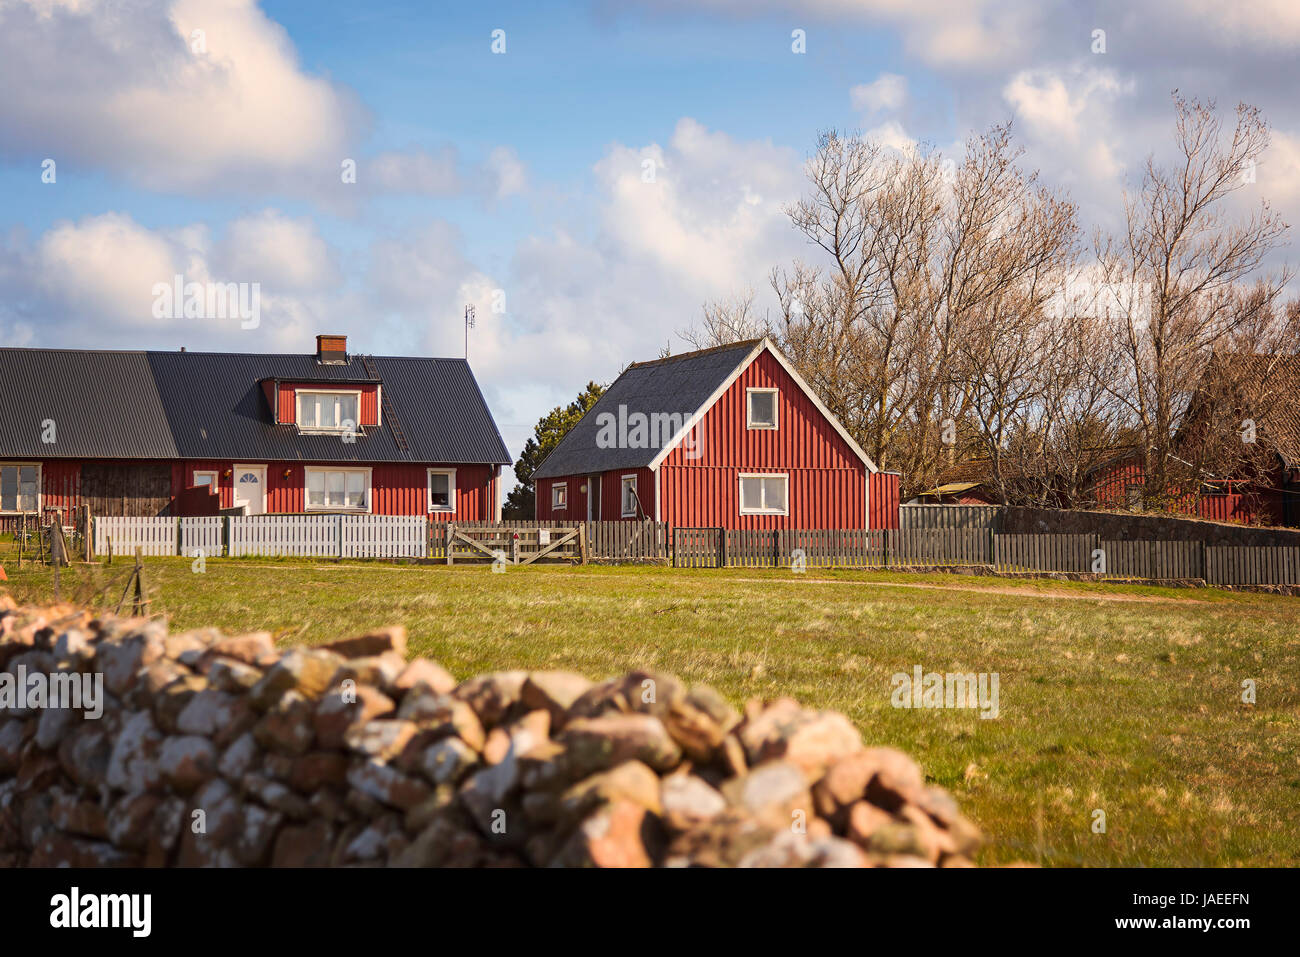 Image of typical swedish red house, in rural locaton. - Stock Image